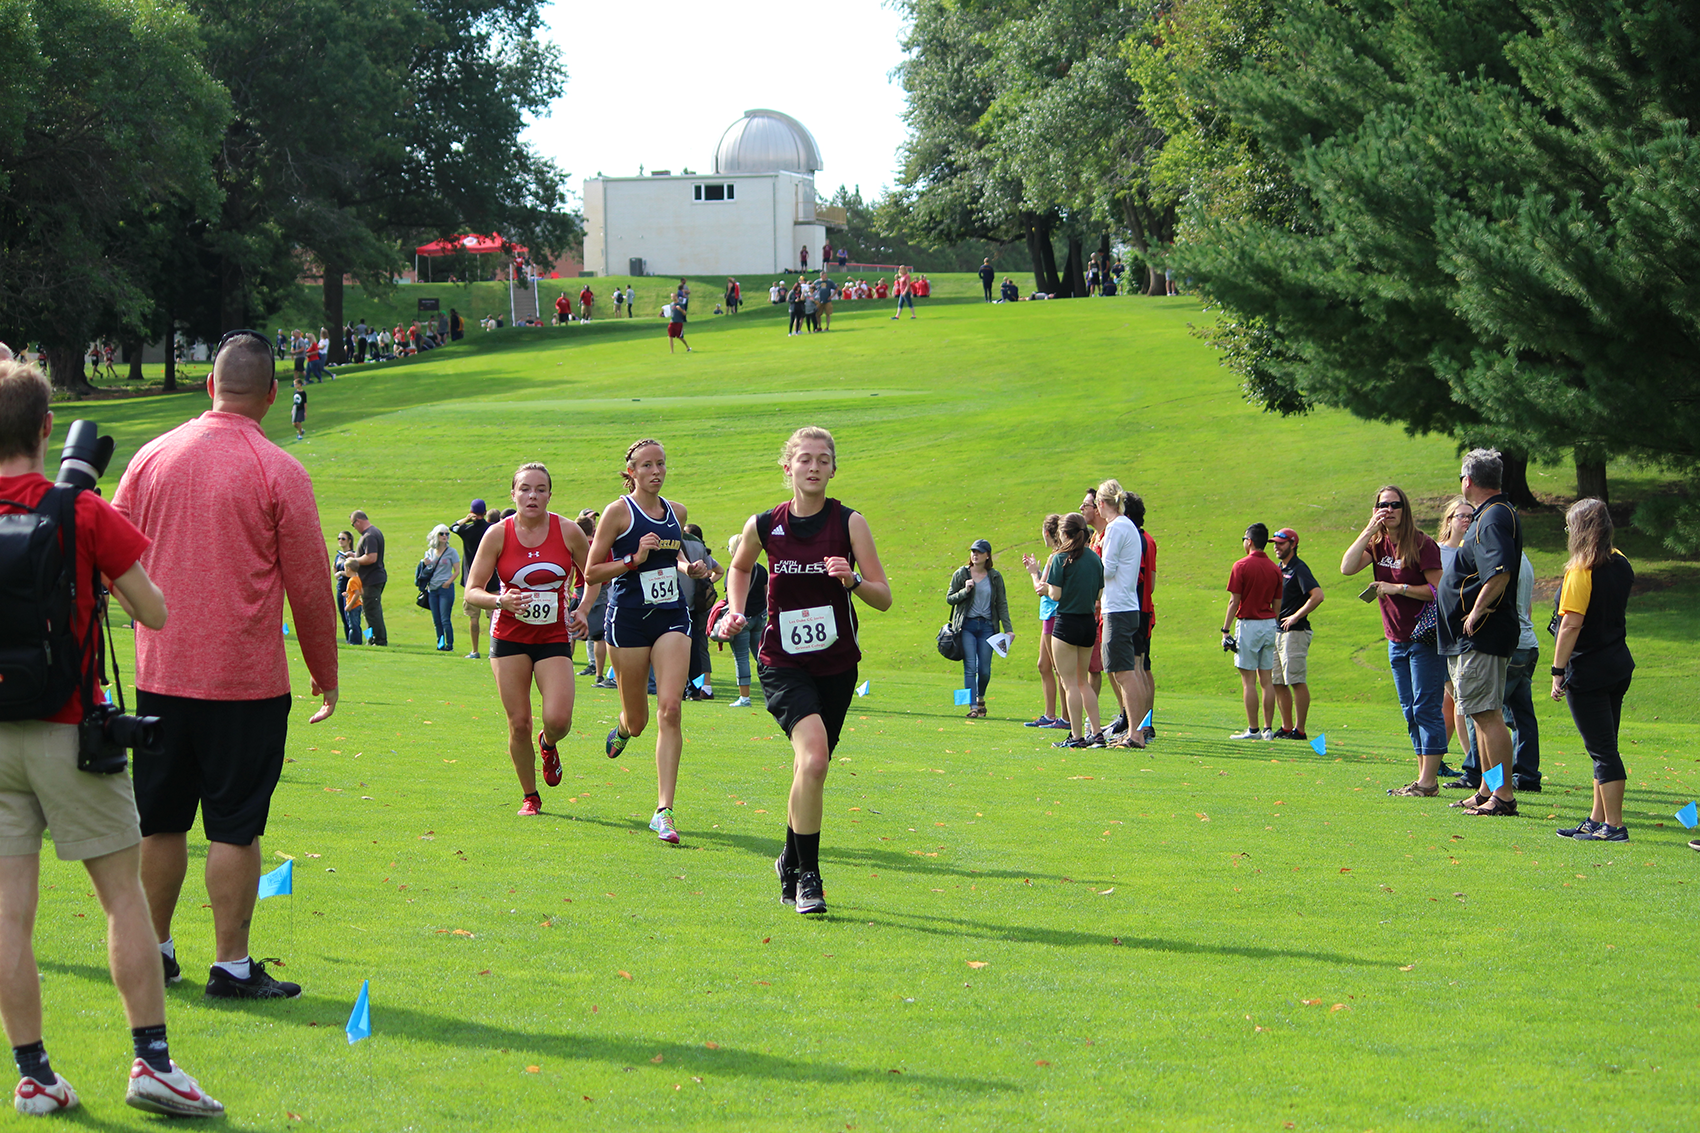 Katlyn Holaday finished in 18th place out of nearly 100 runners on Friday